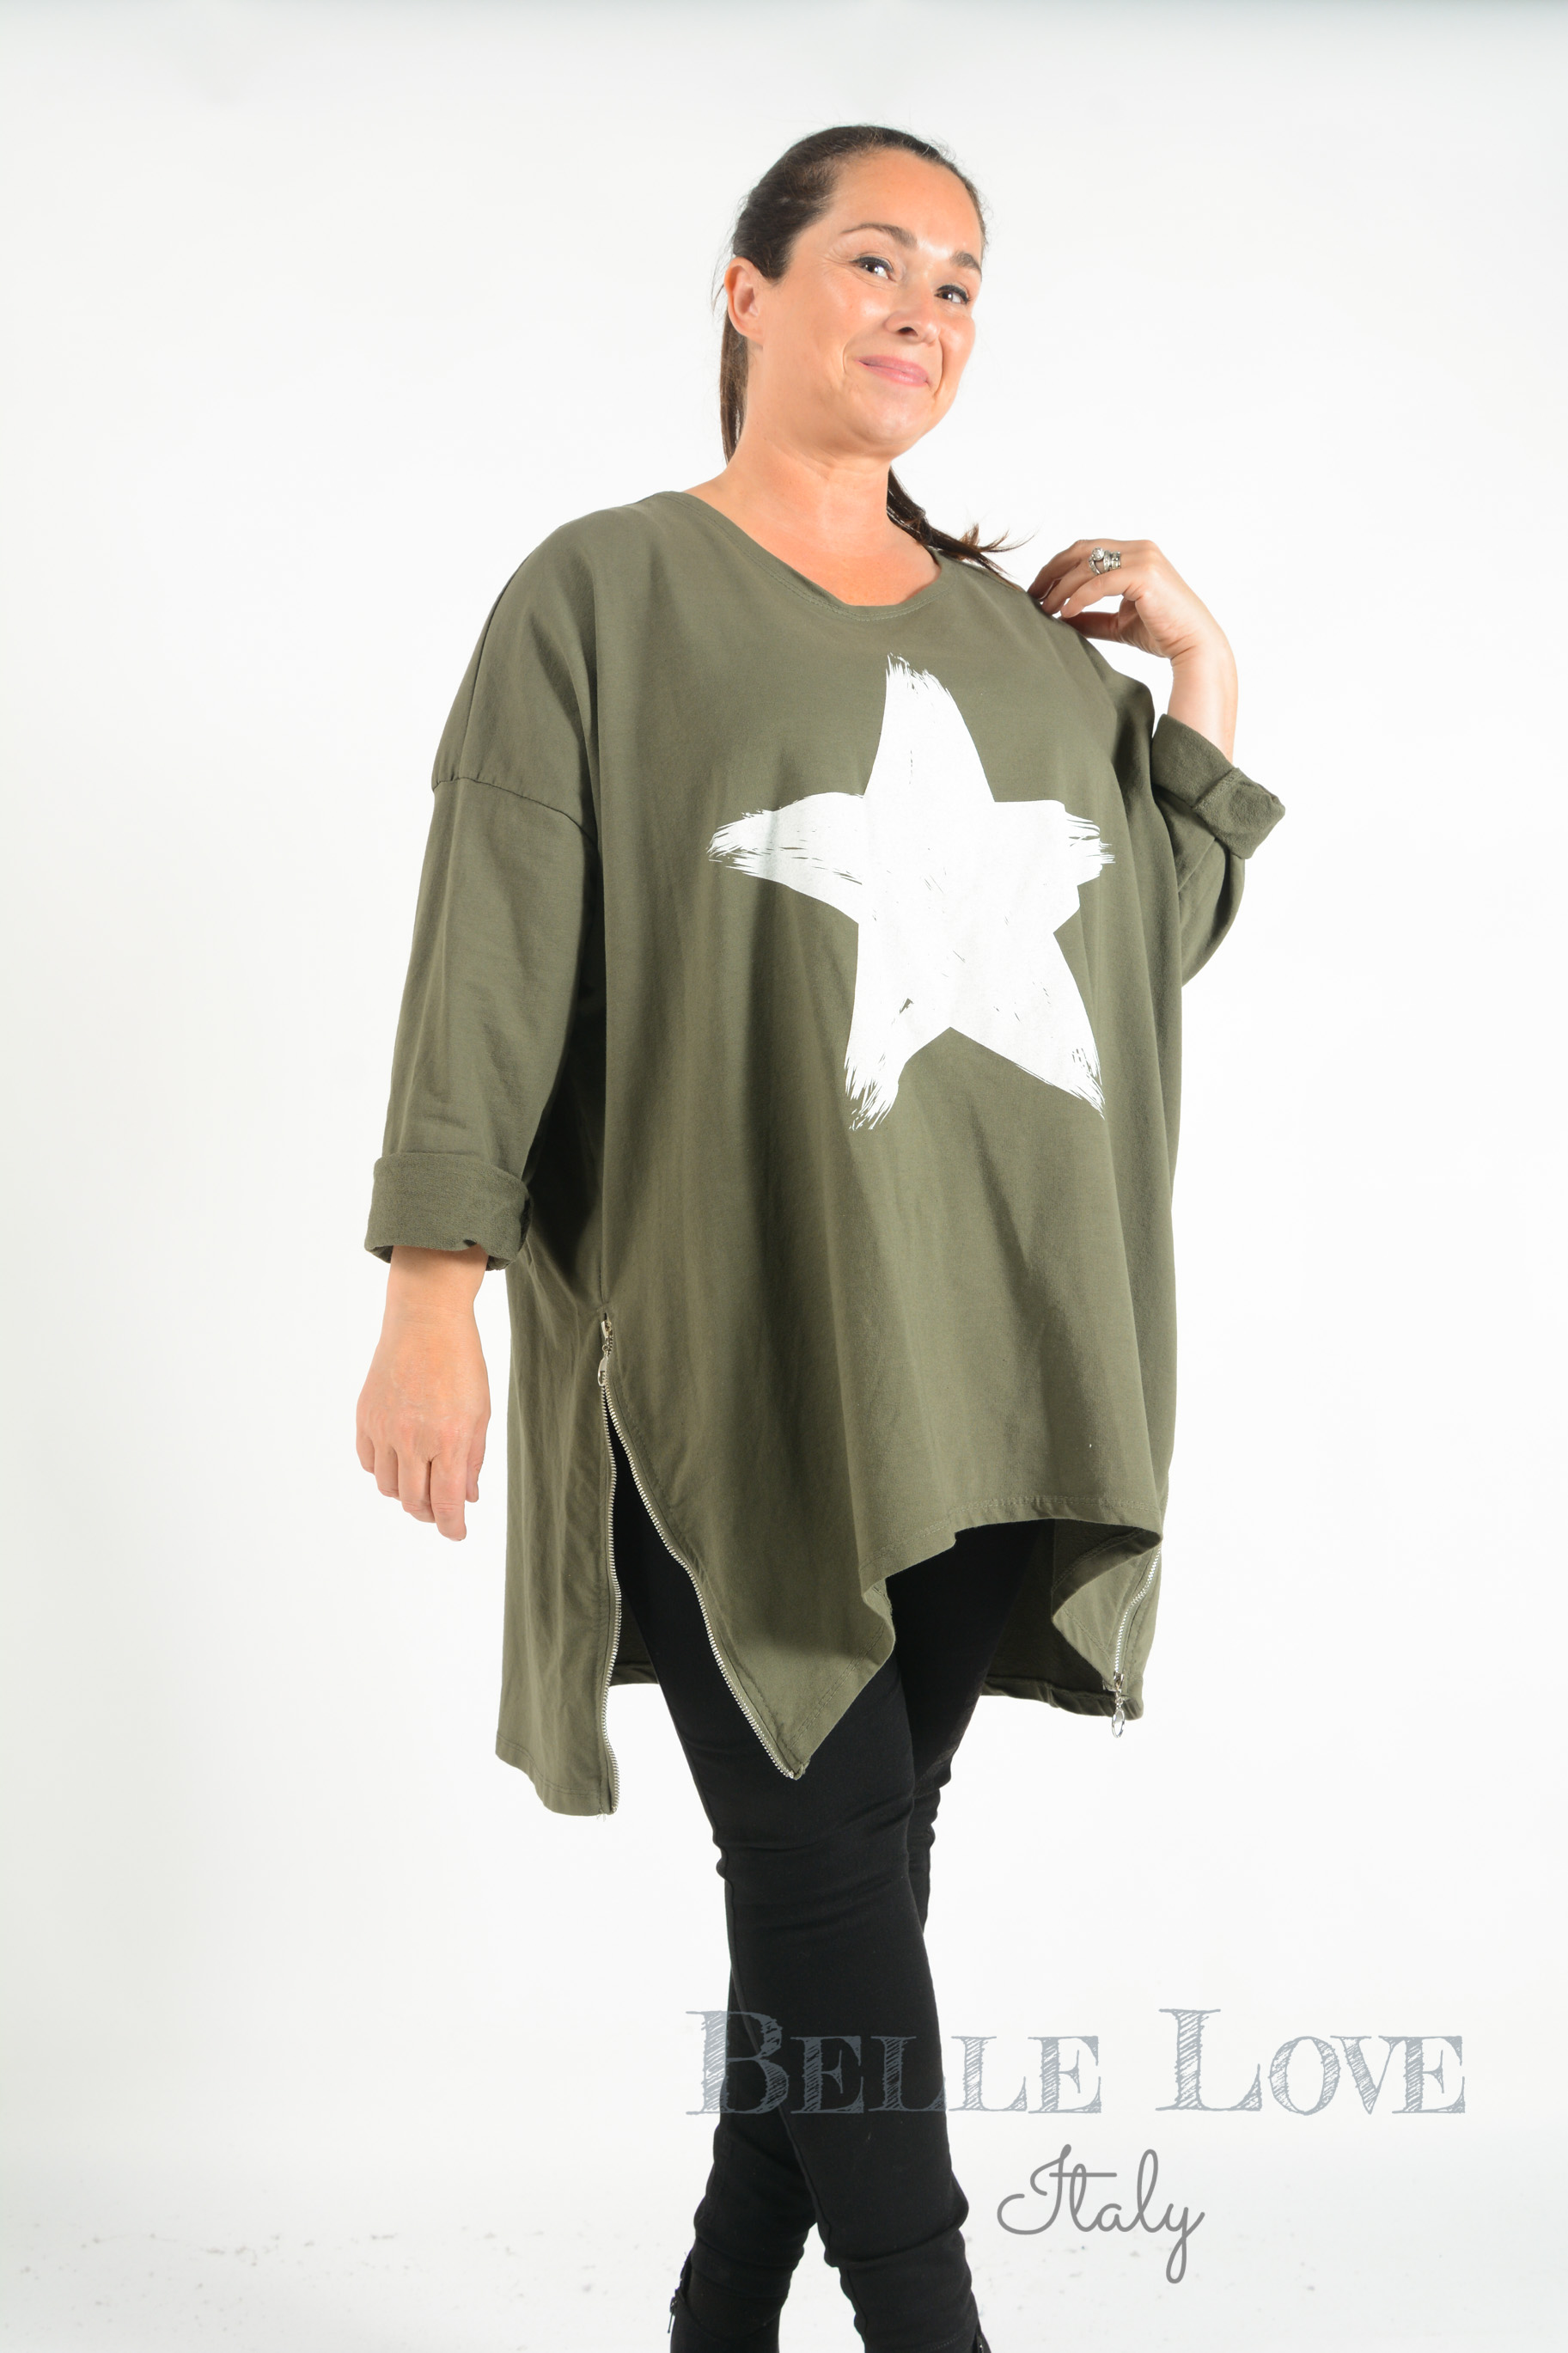 Belle Love Italy Verity Star Sweatshirt